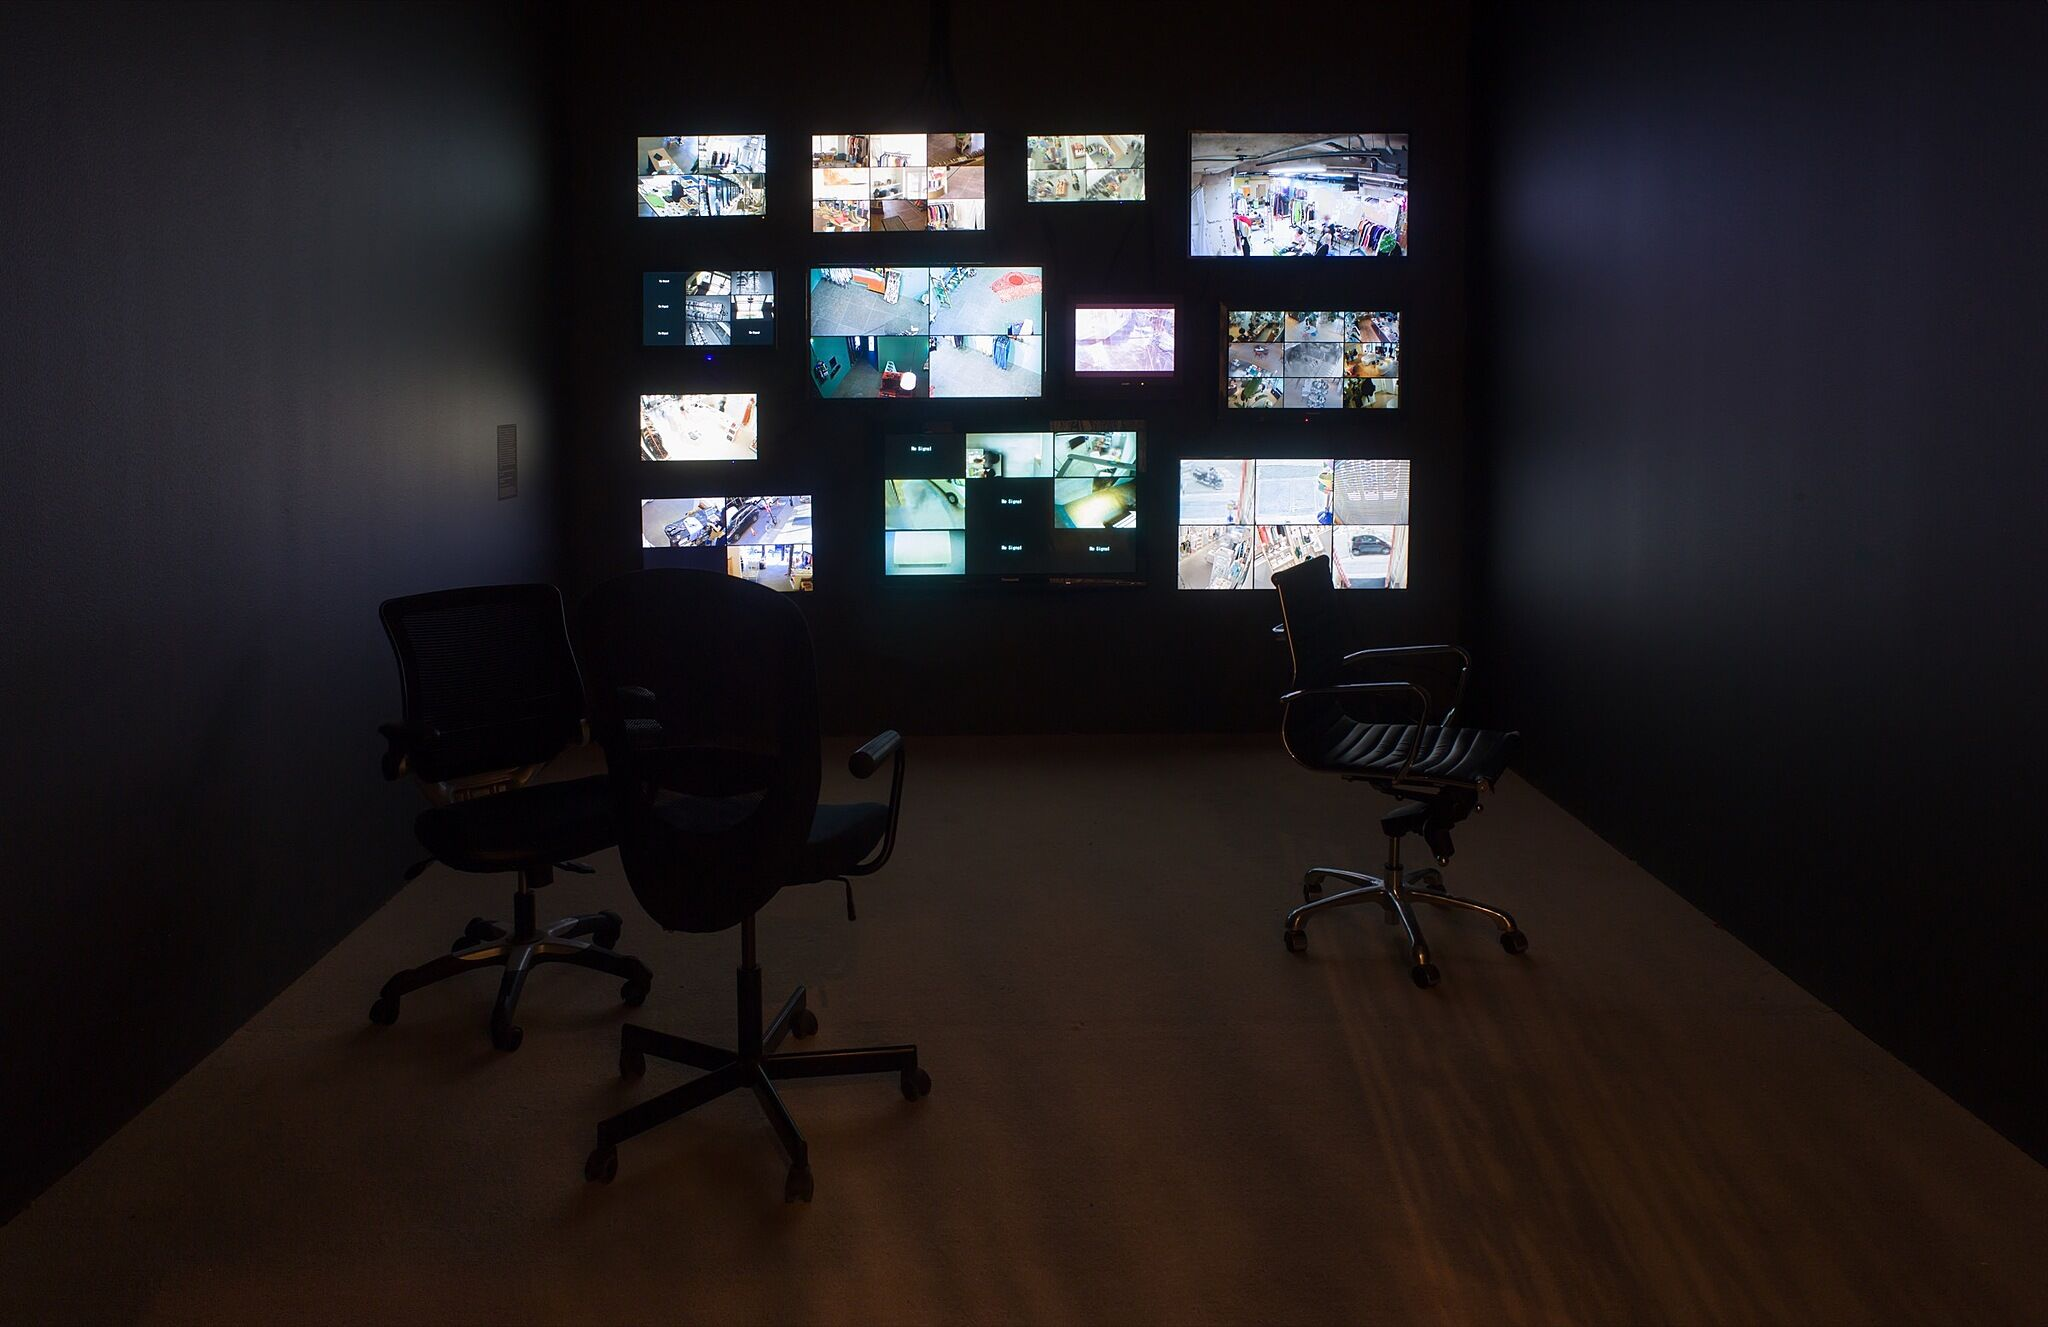 A dark gallery space with many video monitors playing surveillance footage.